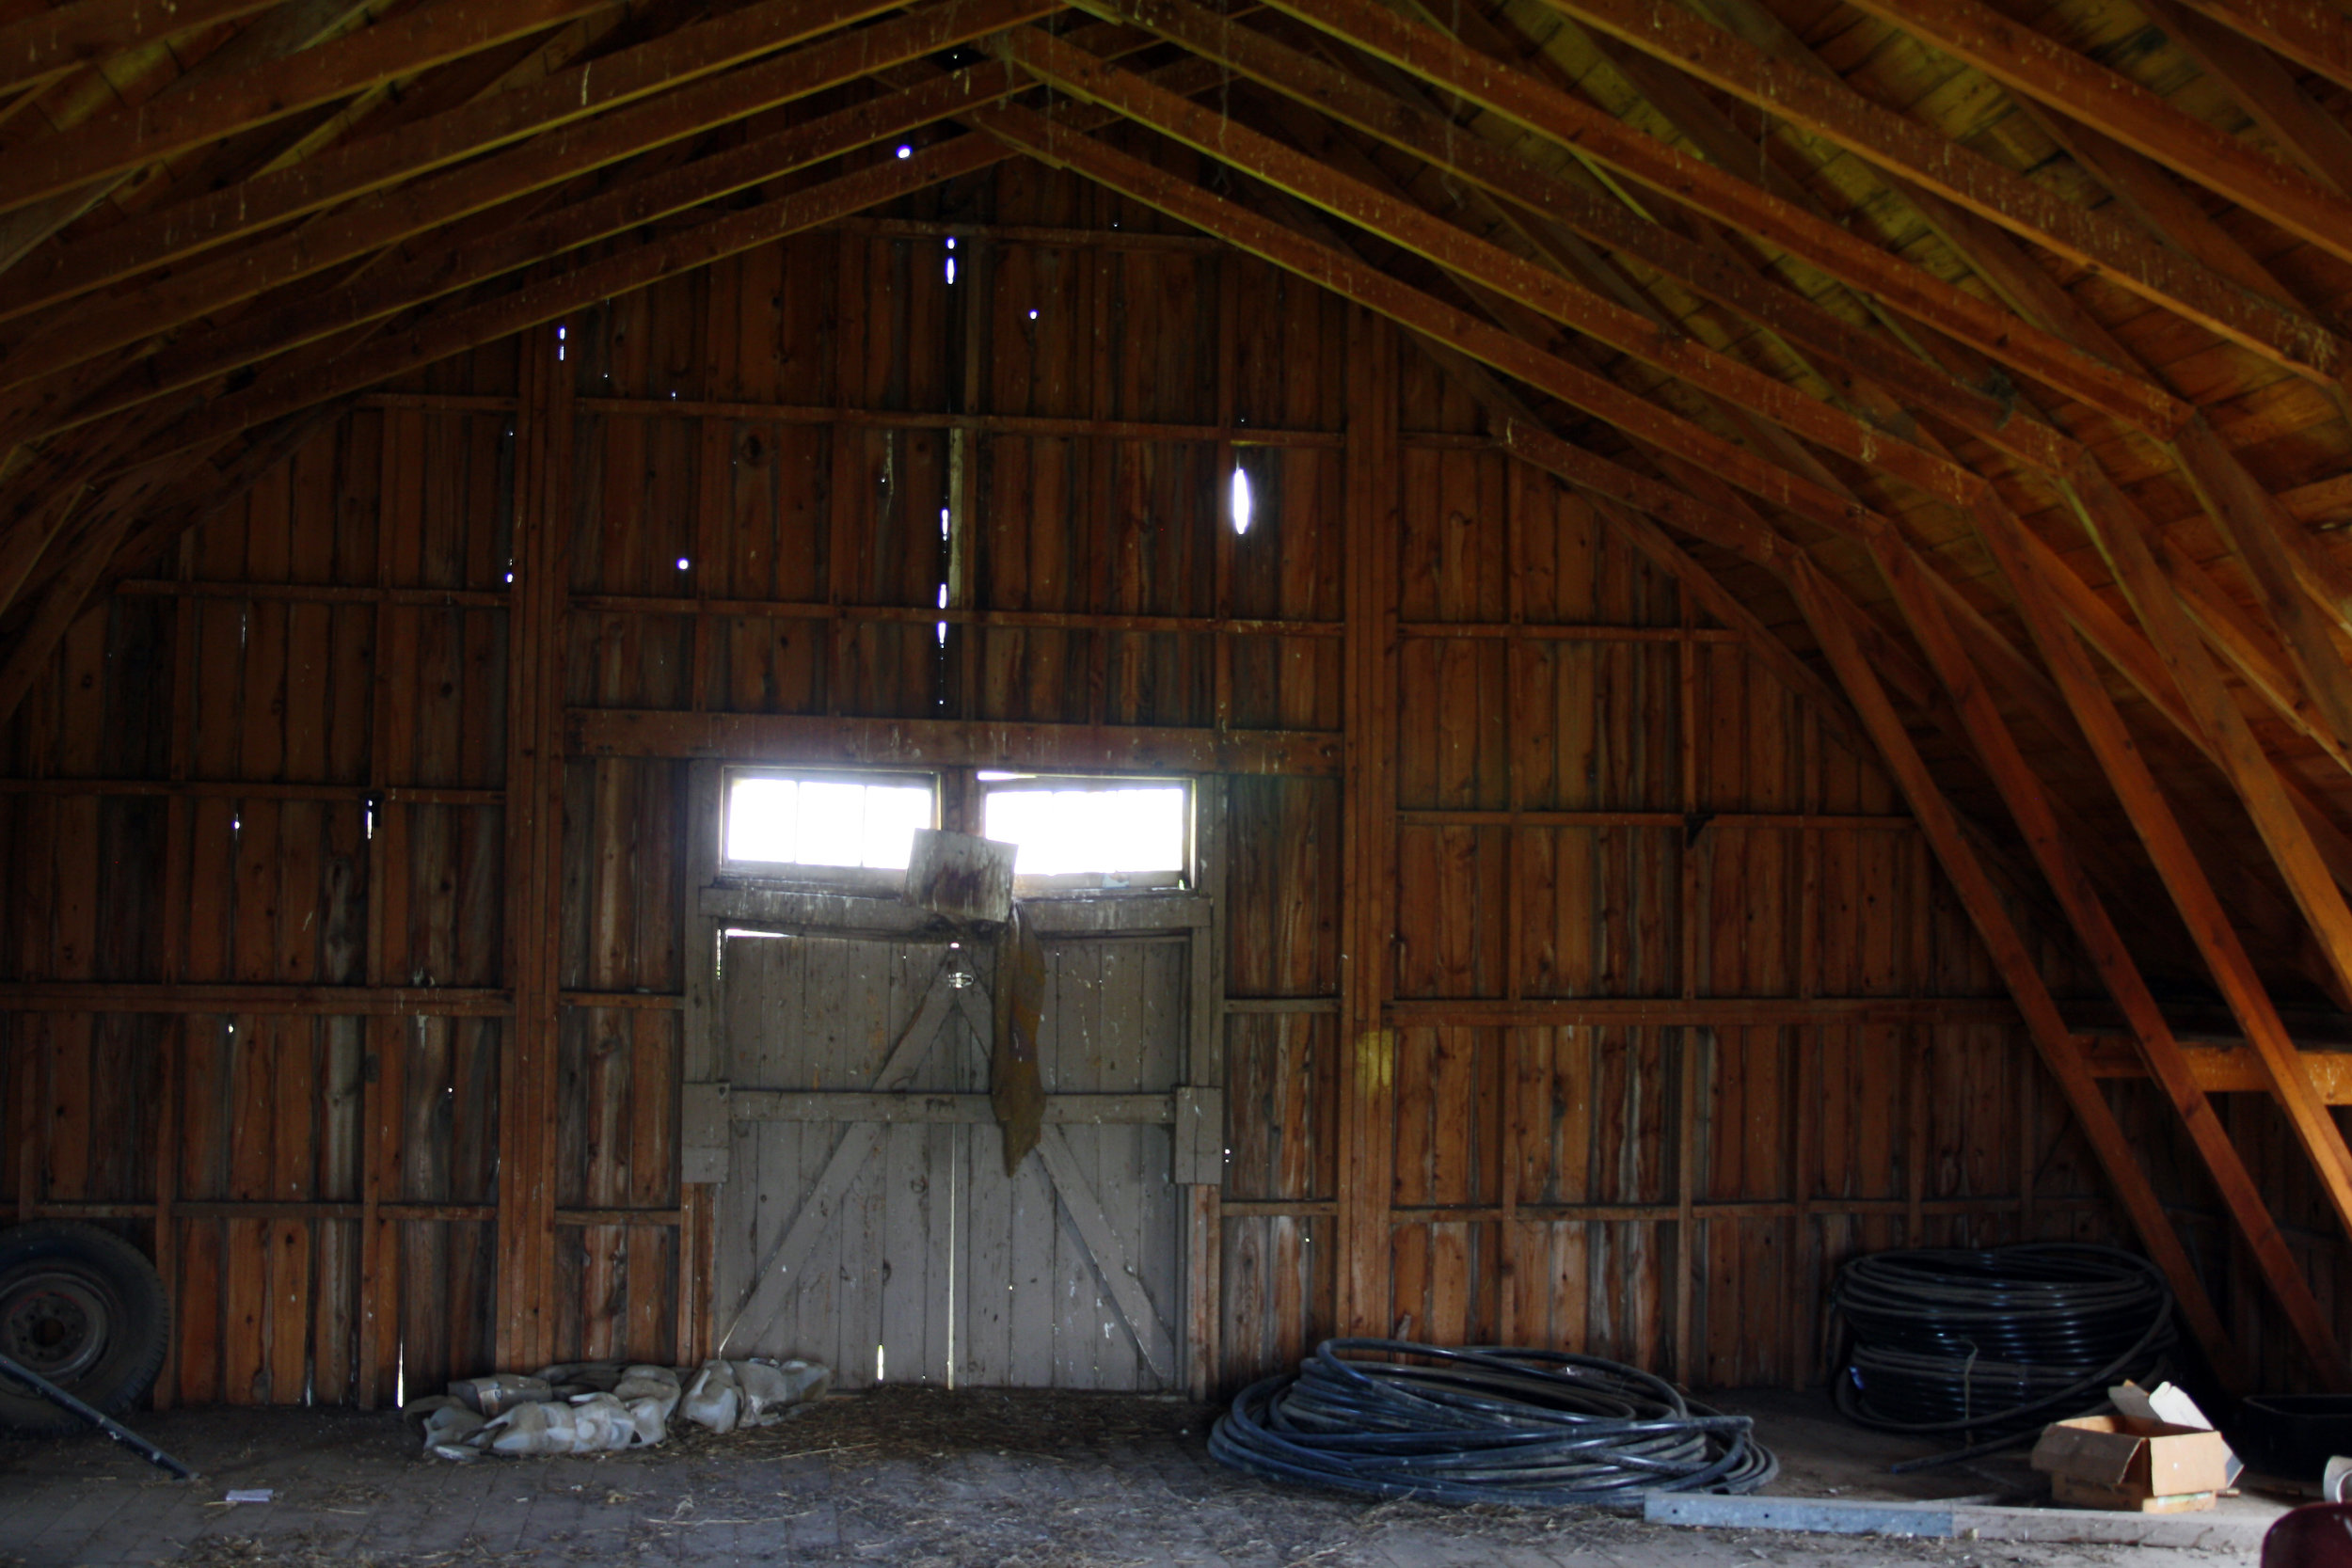 View from the second floor of the barn, looking north.